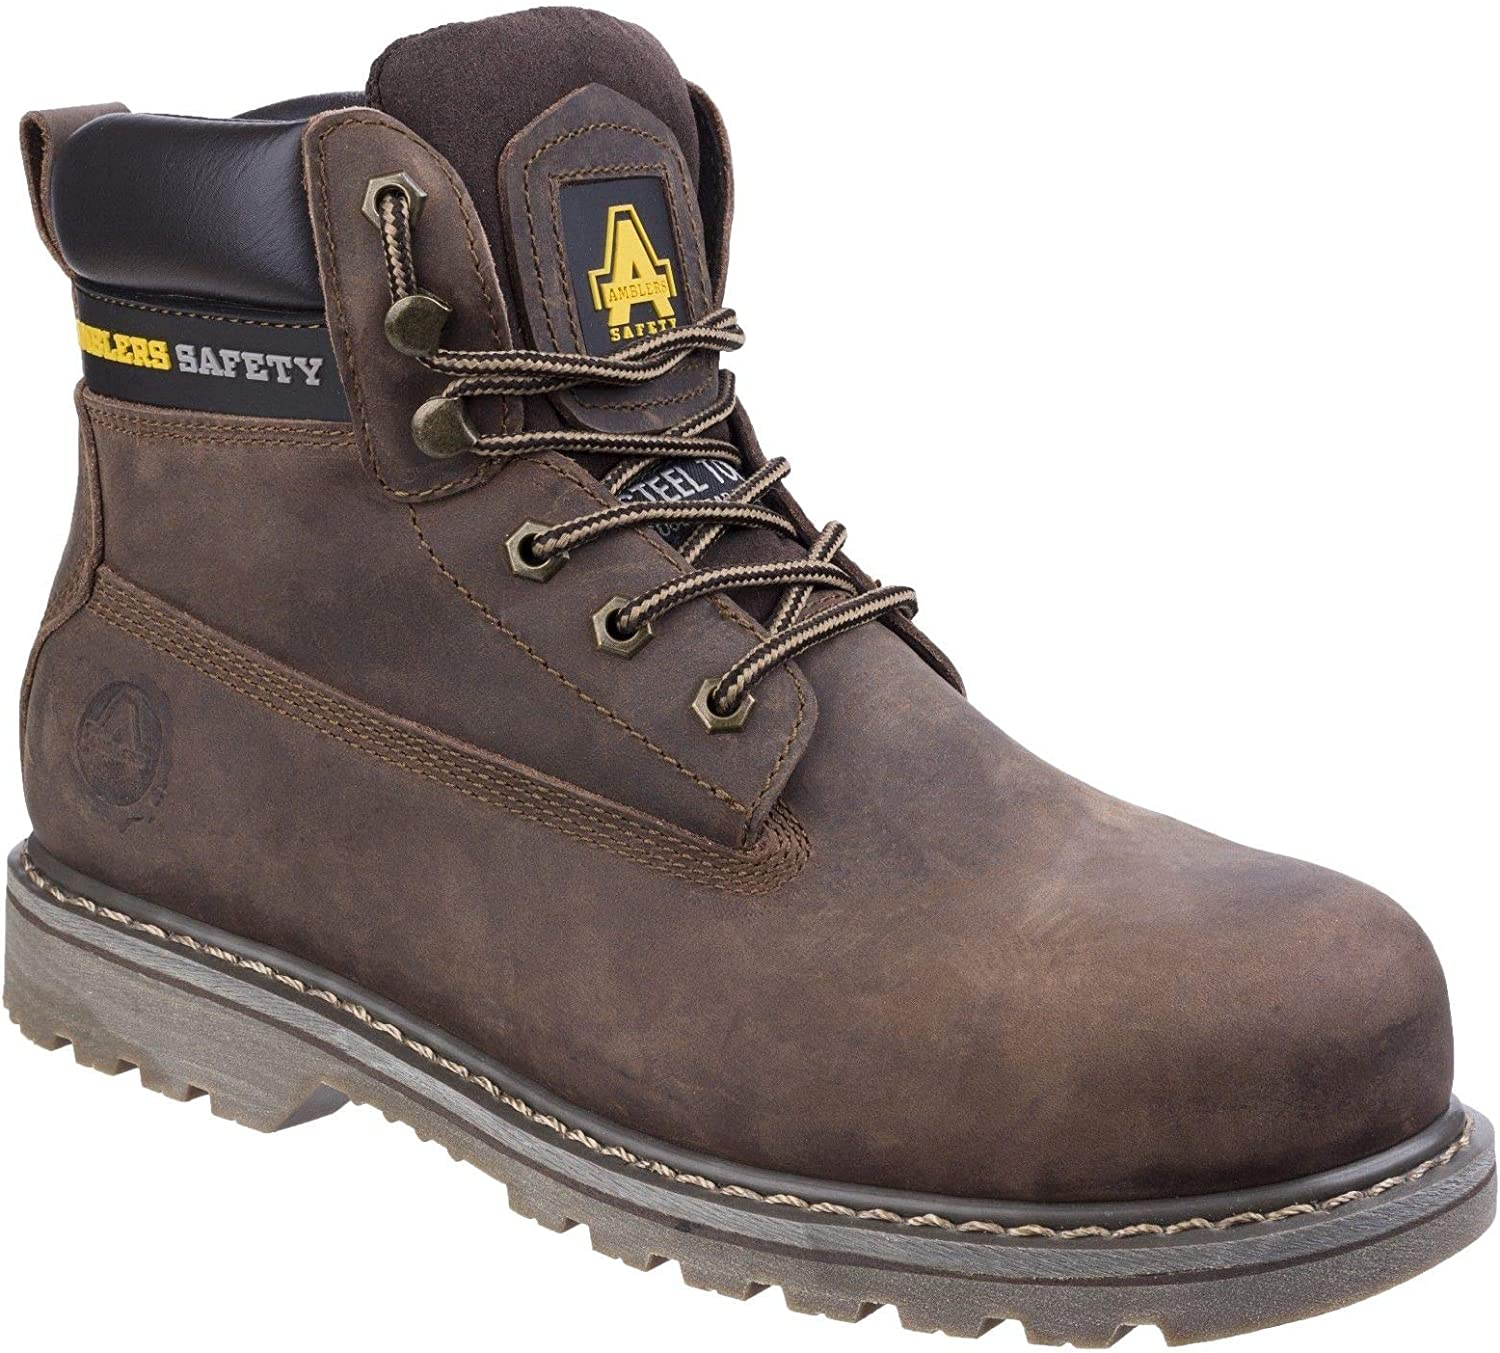 Amblers Safety Unisex FS164 Goodyear Welted Lace up Industrial Safety Boot